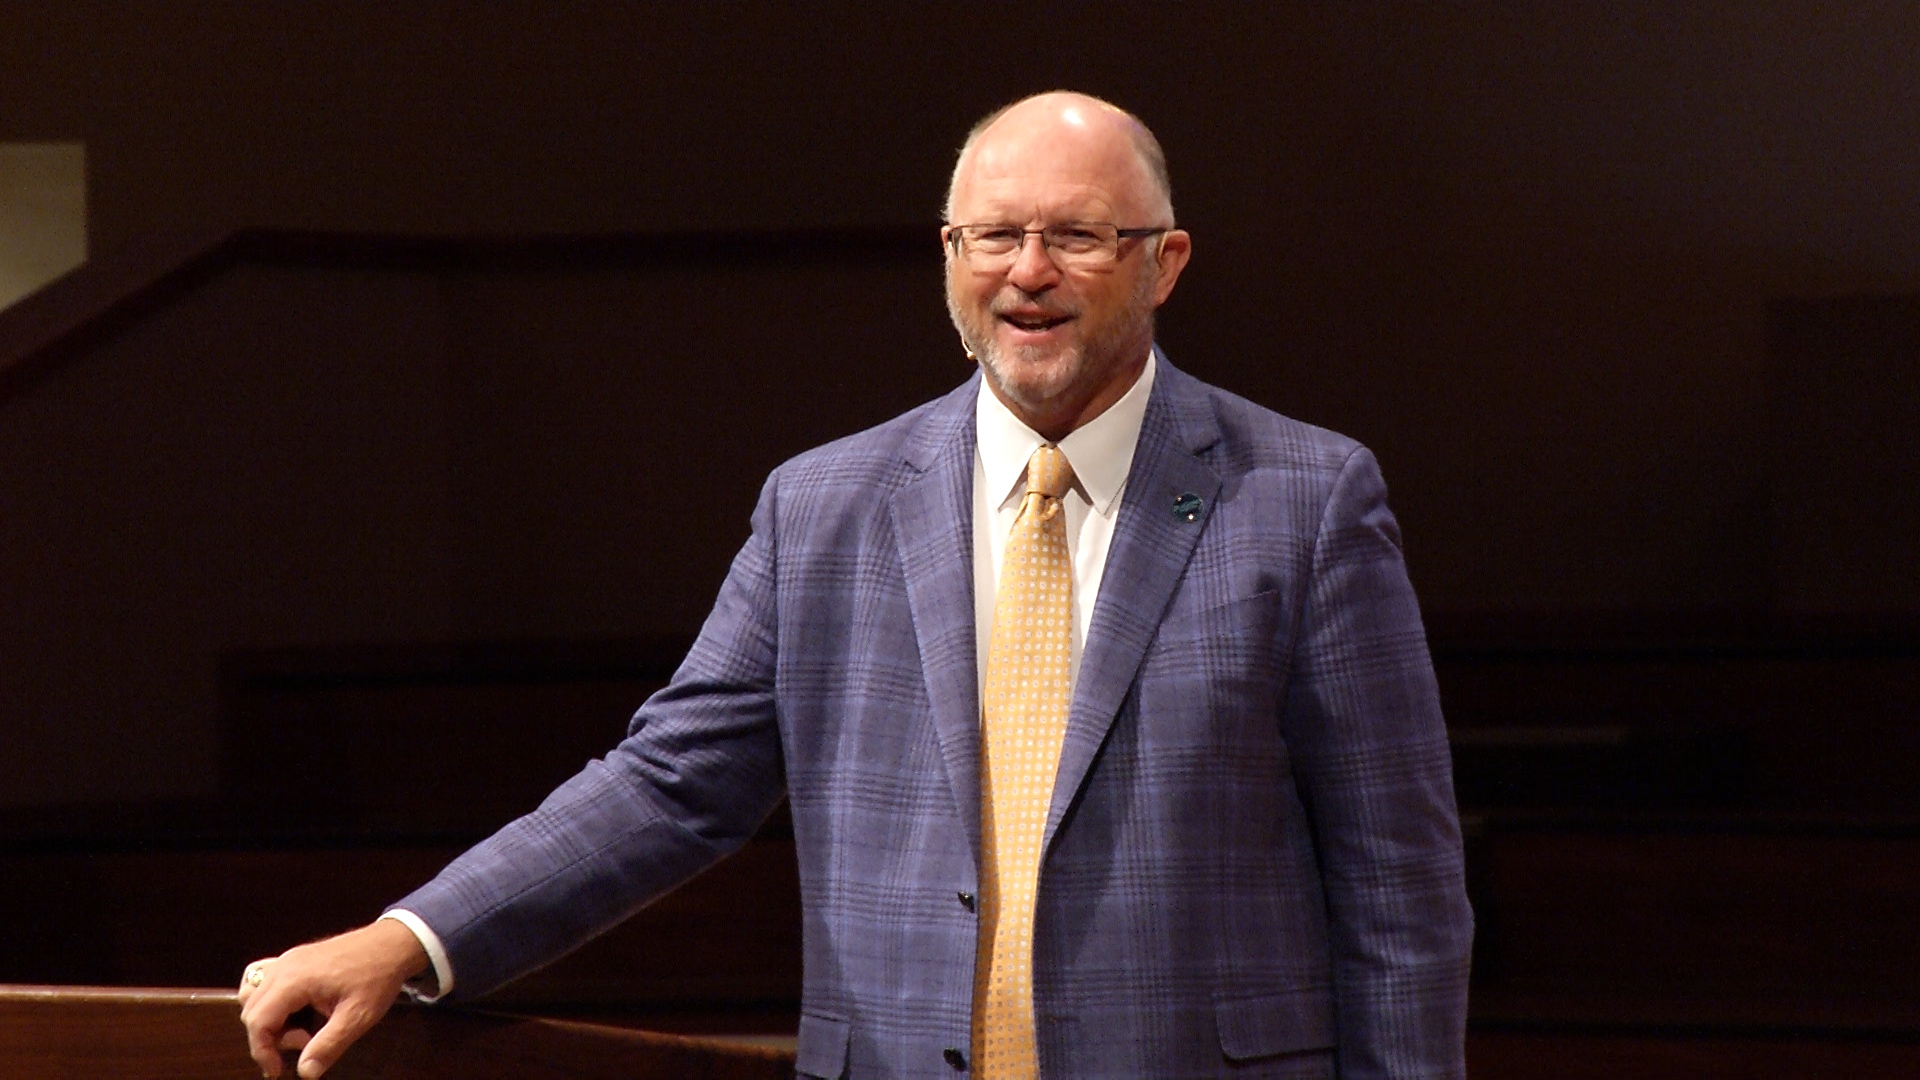 Pastor Paul Chappell: Understanding the Battle